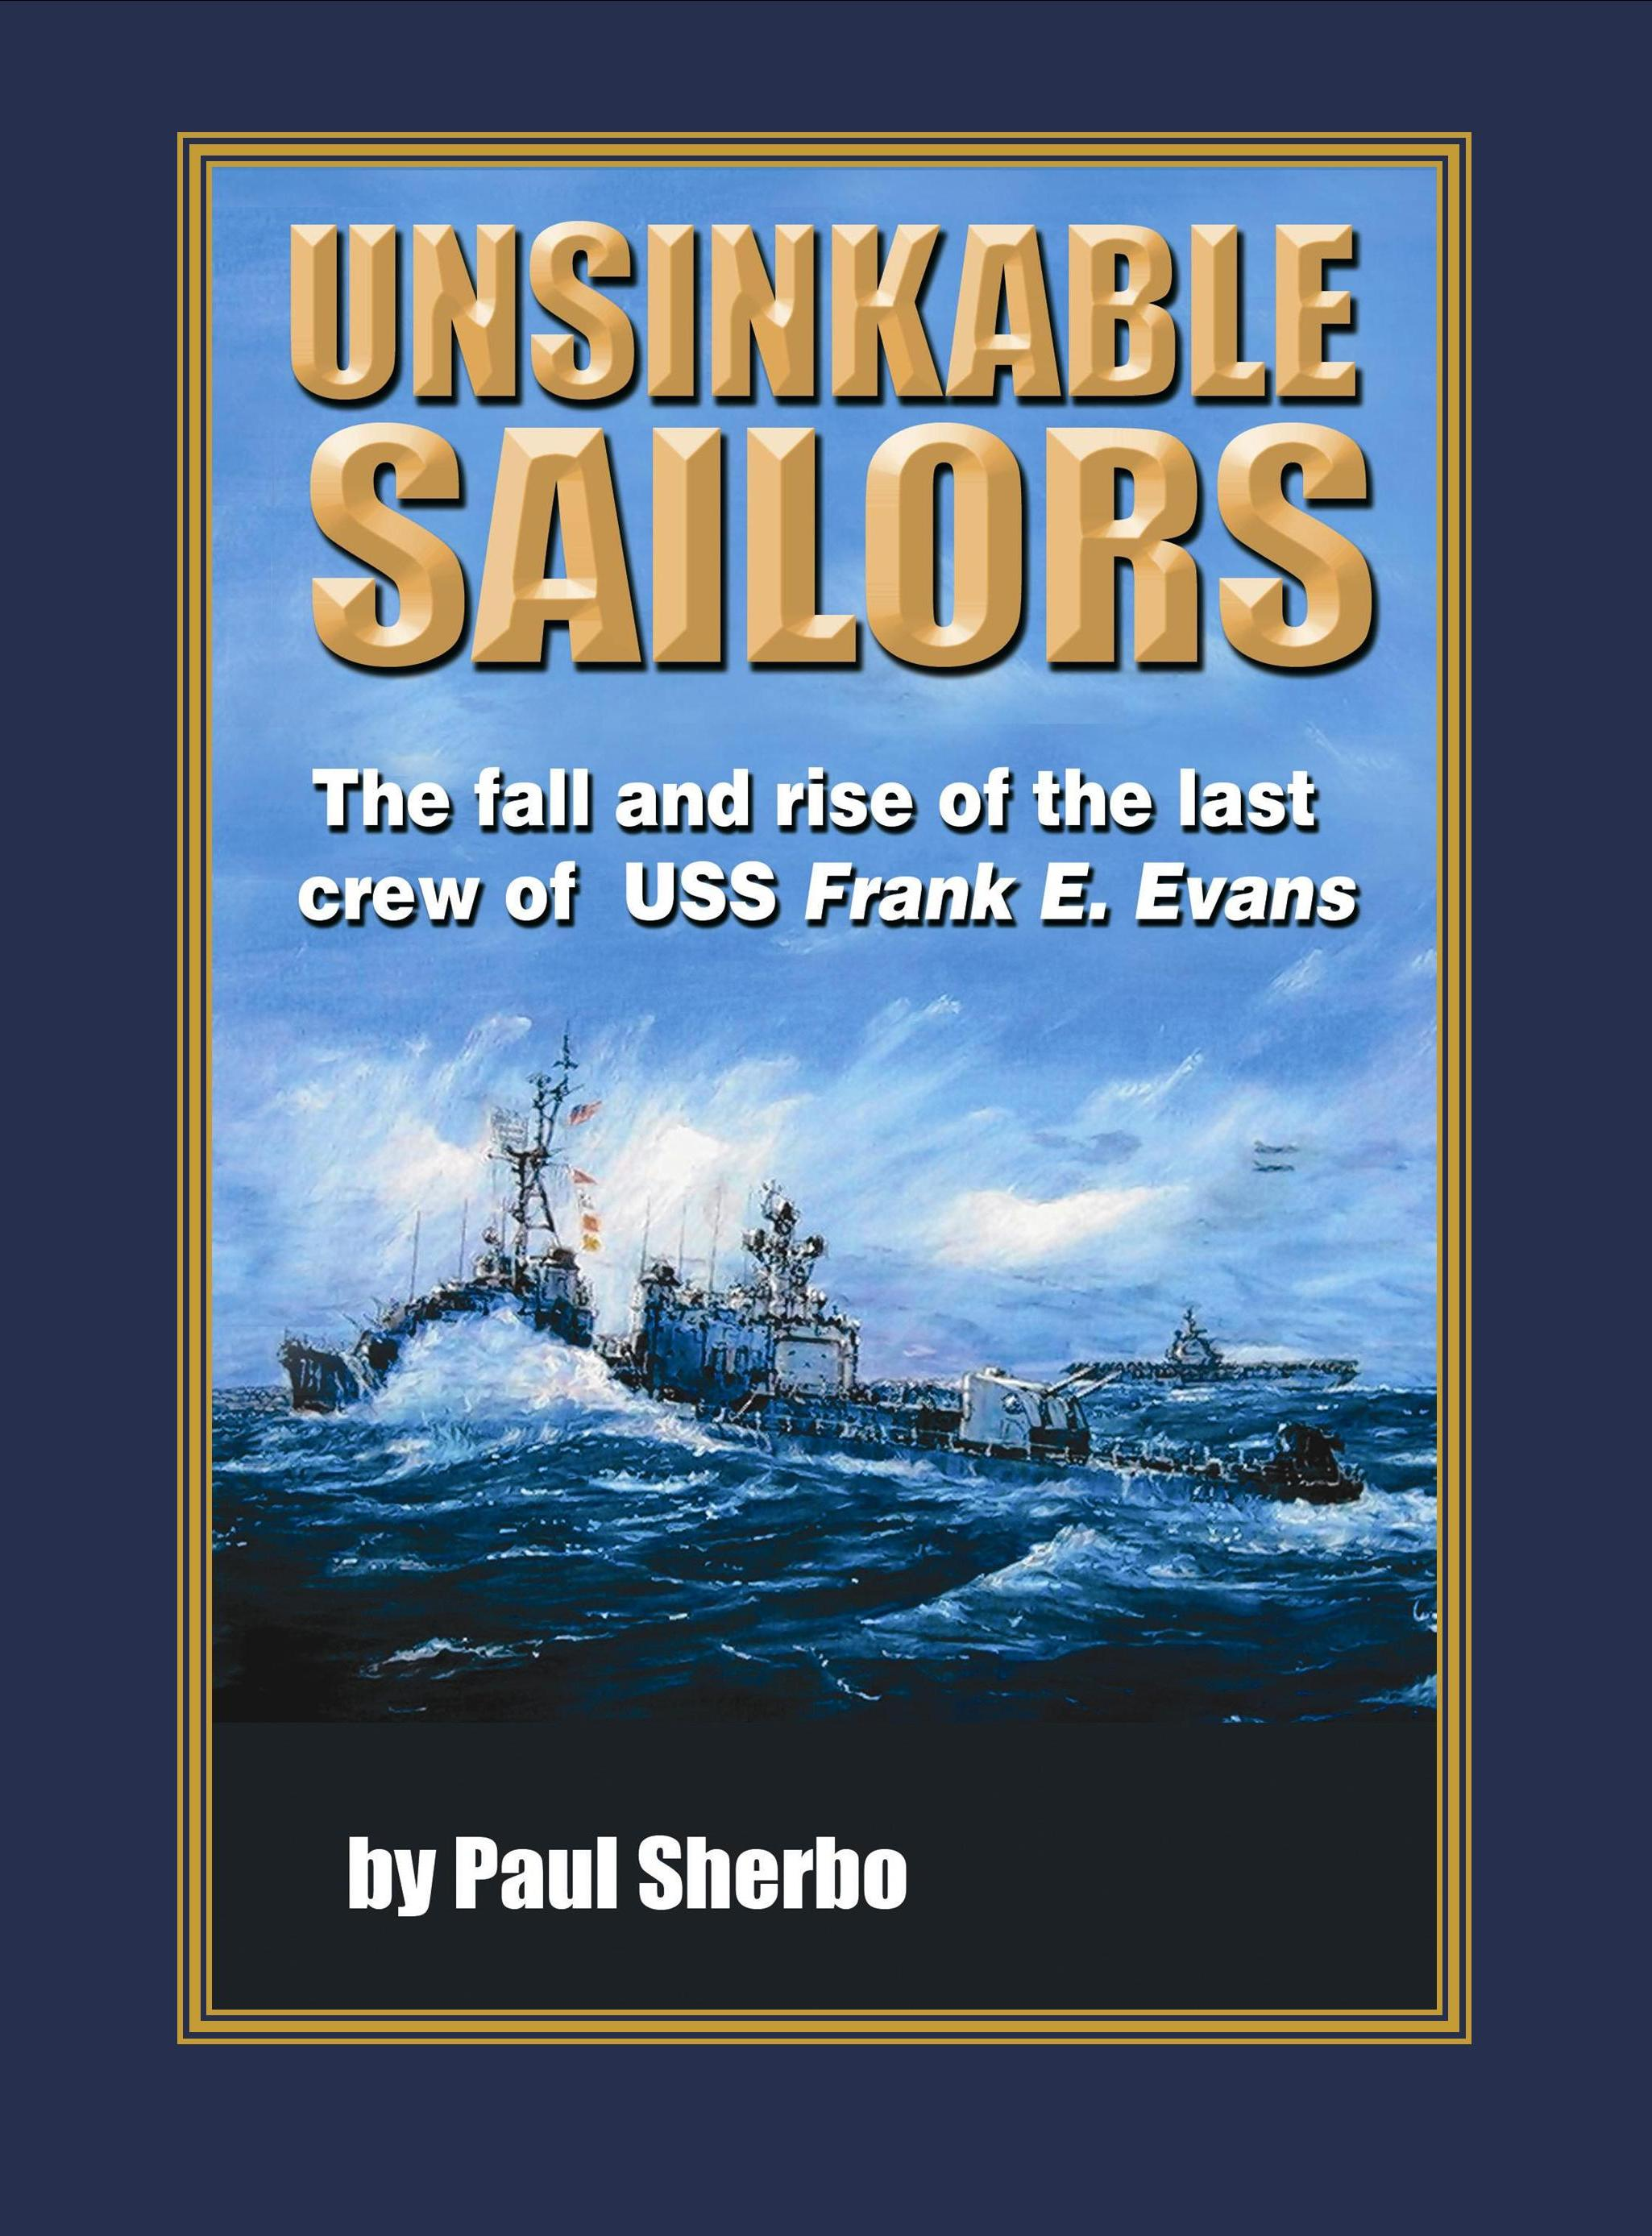 Unsinkable Sailors by Paul Sherbo book cover